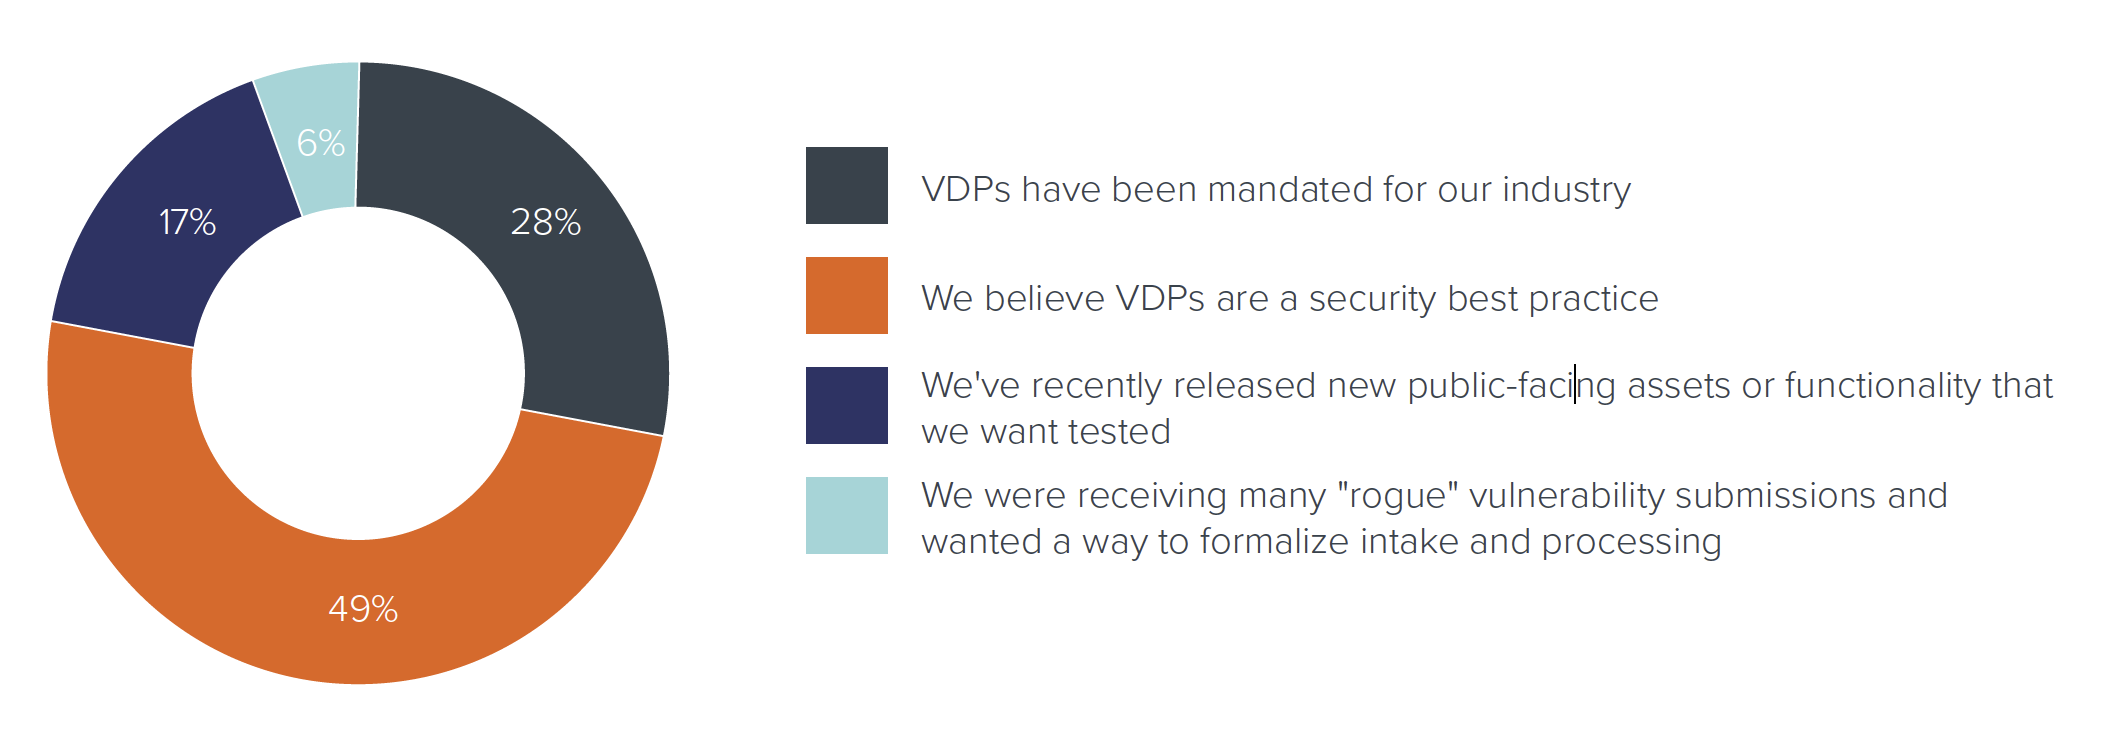 For organizations with a VDP: What is the main reason why your organization has implemented a vulnerability disclosure program?